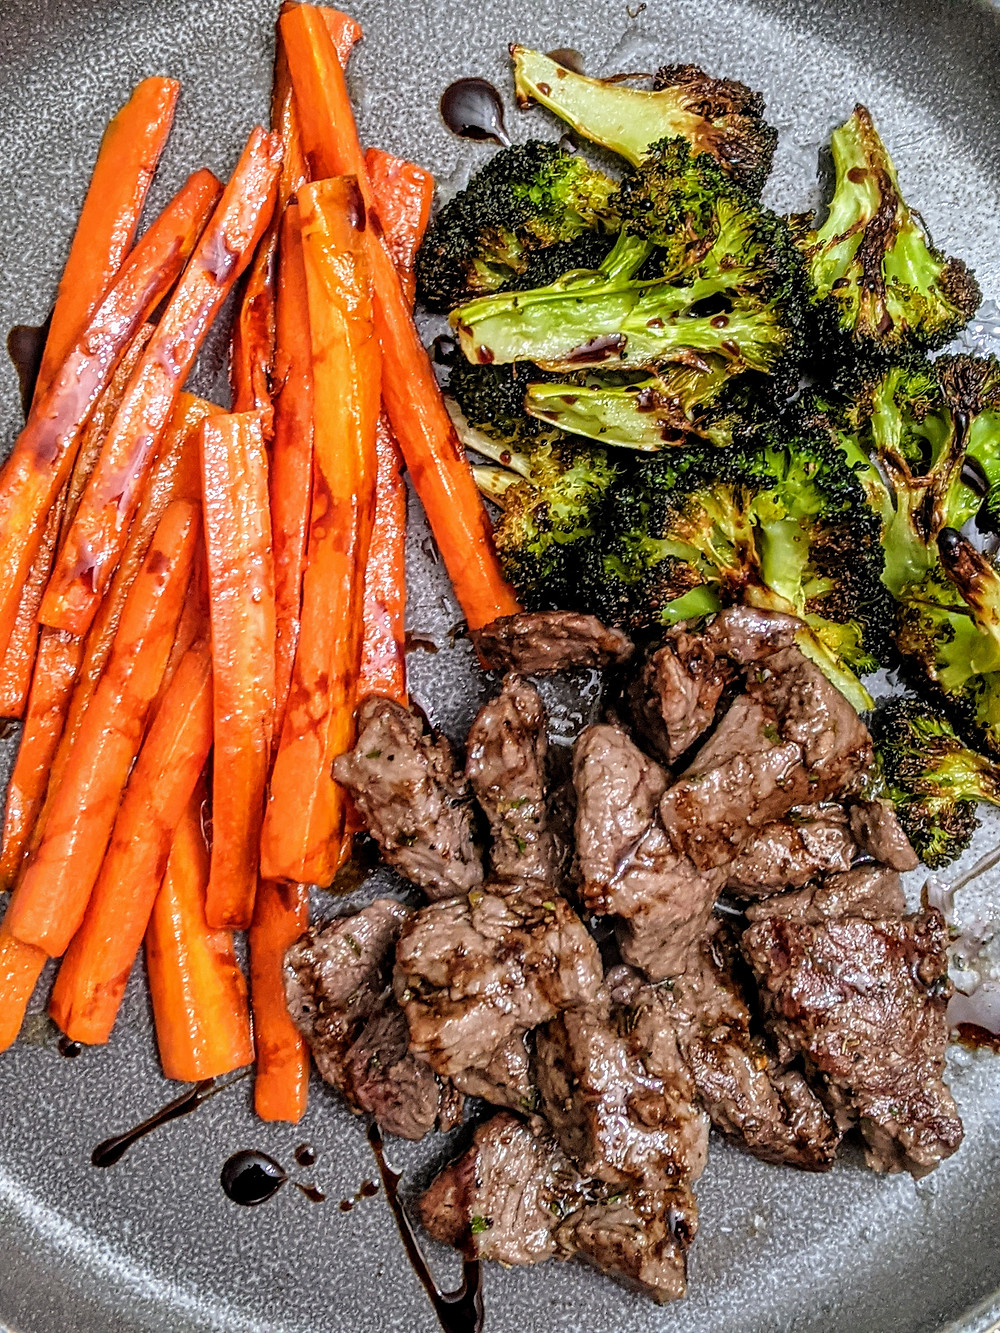 The Sunday Cookbook - One Pan Balsamic Steak and Veggies - Joseph Centineo - food allergy recipe - trubeef